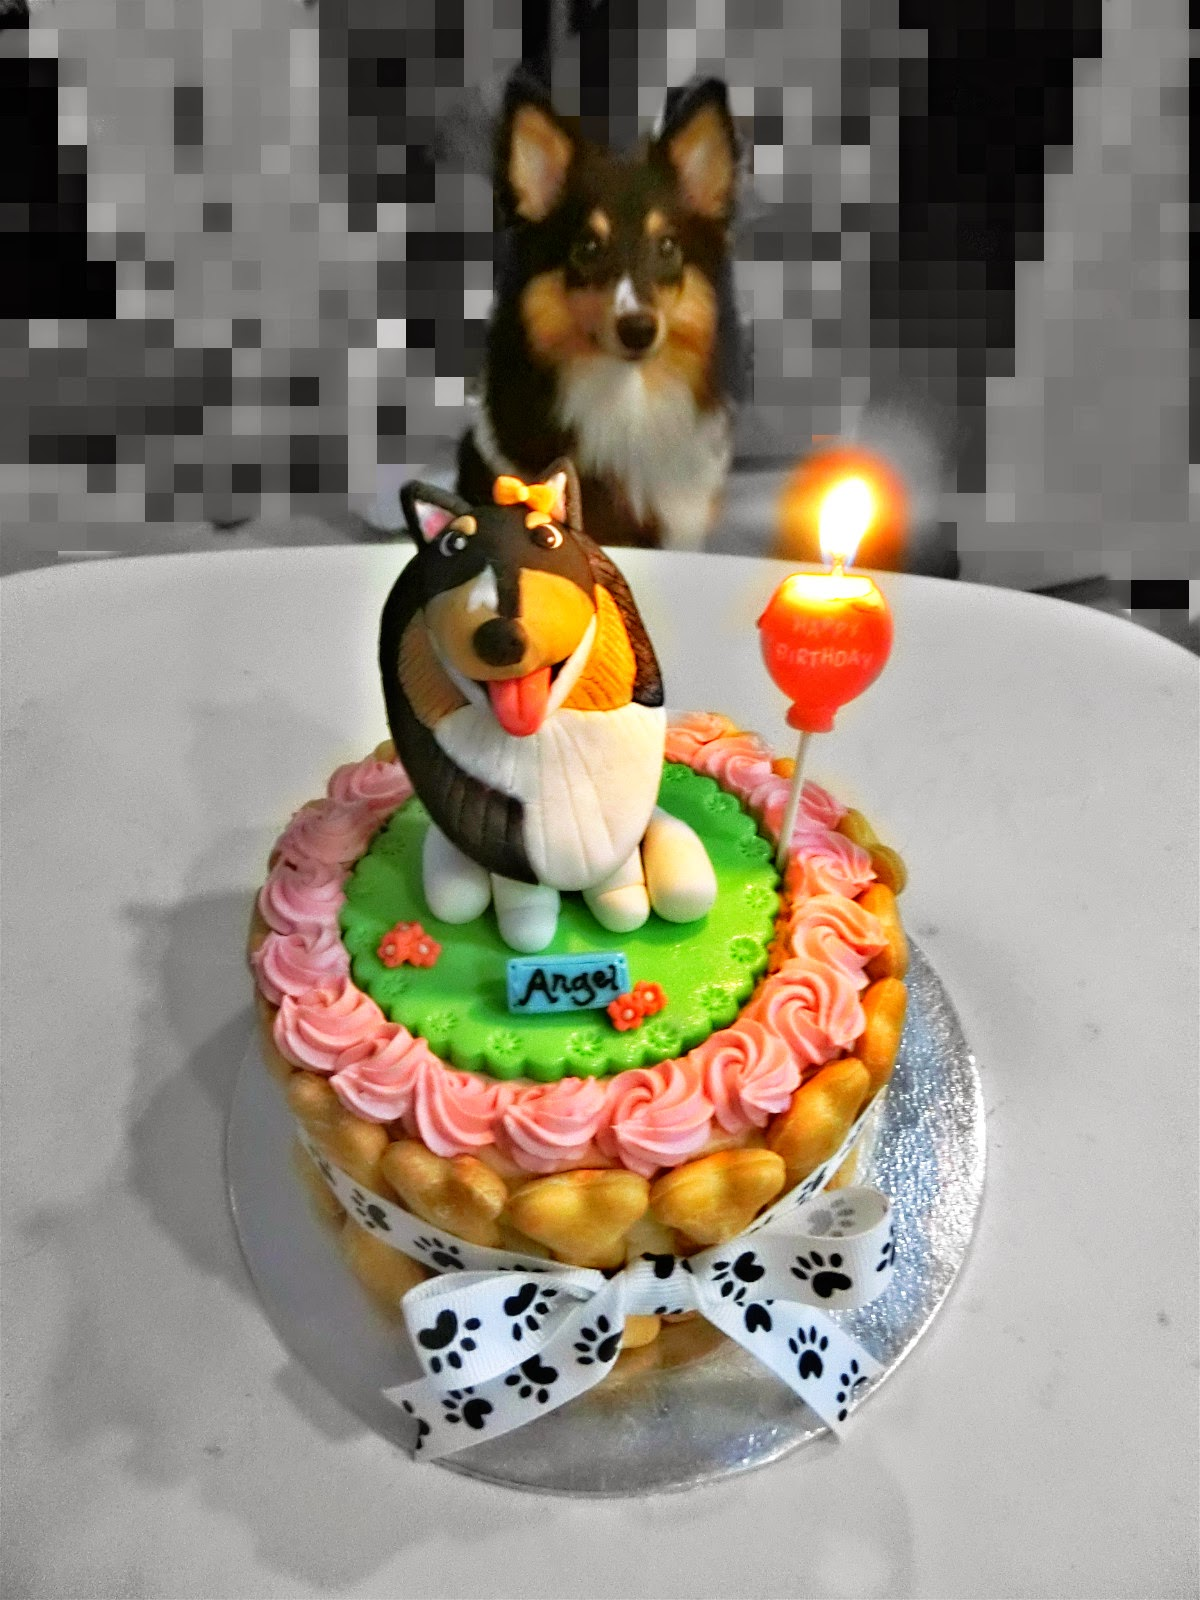 The Birthday Cake We Ordered Are From Pawoof Which They Can Make Very Cute And Especially Figurine Looks Like Angel Wish Her Healthy Happy